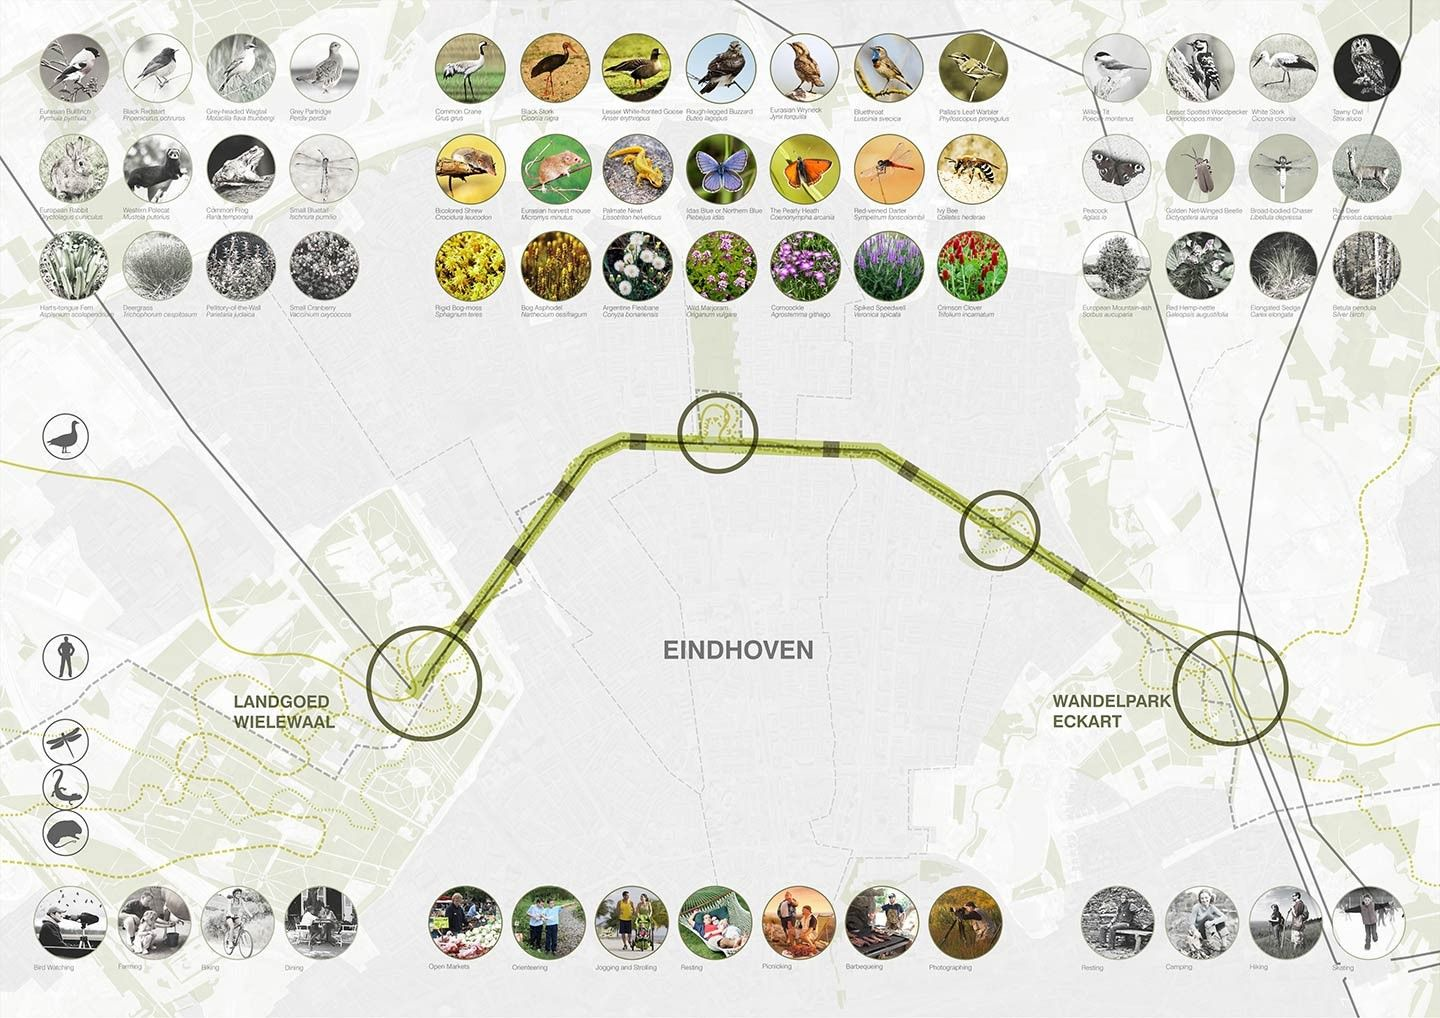 Eindhoven ecological energy connection species